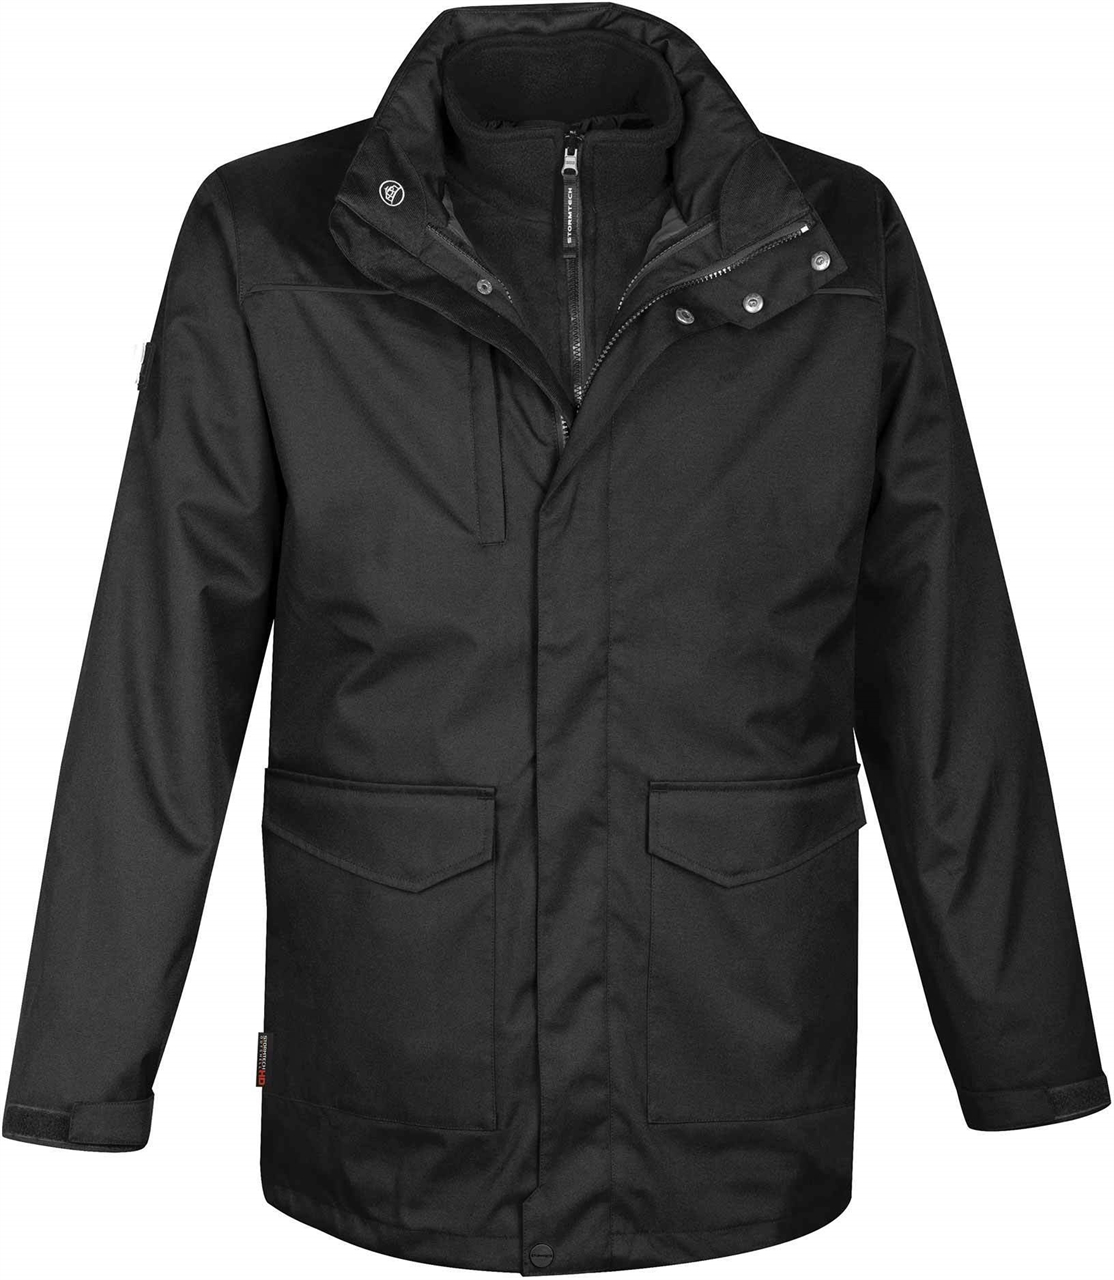 Picture of Stormtech Men's Vortex HD 3-In-1 System Parka